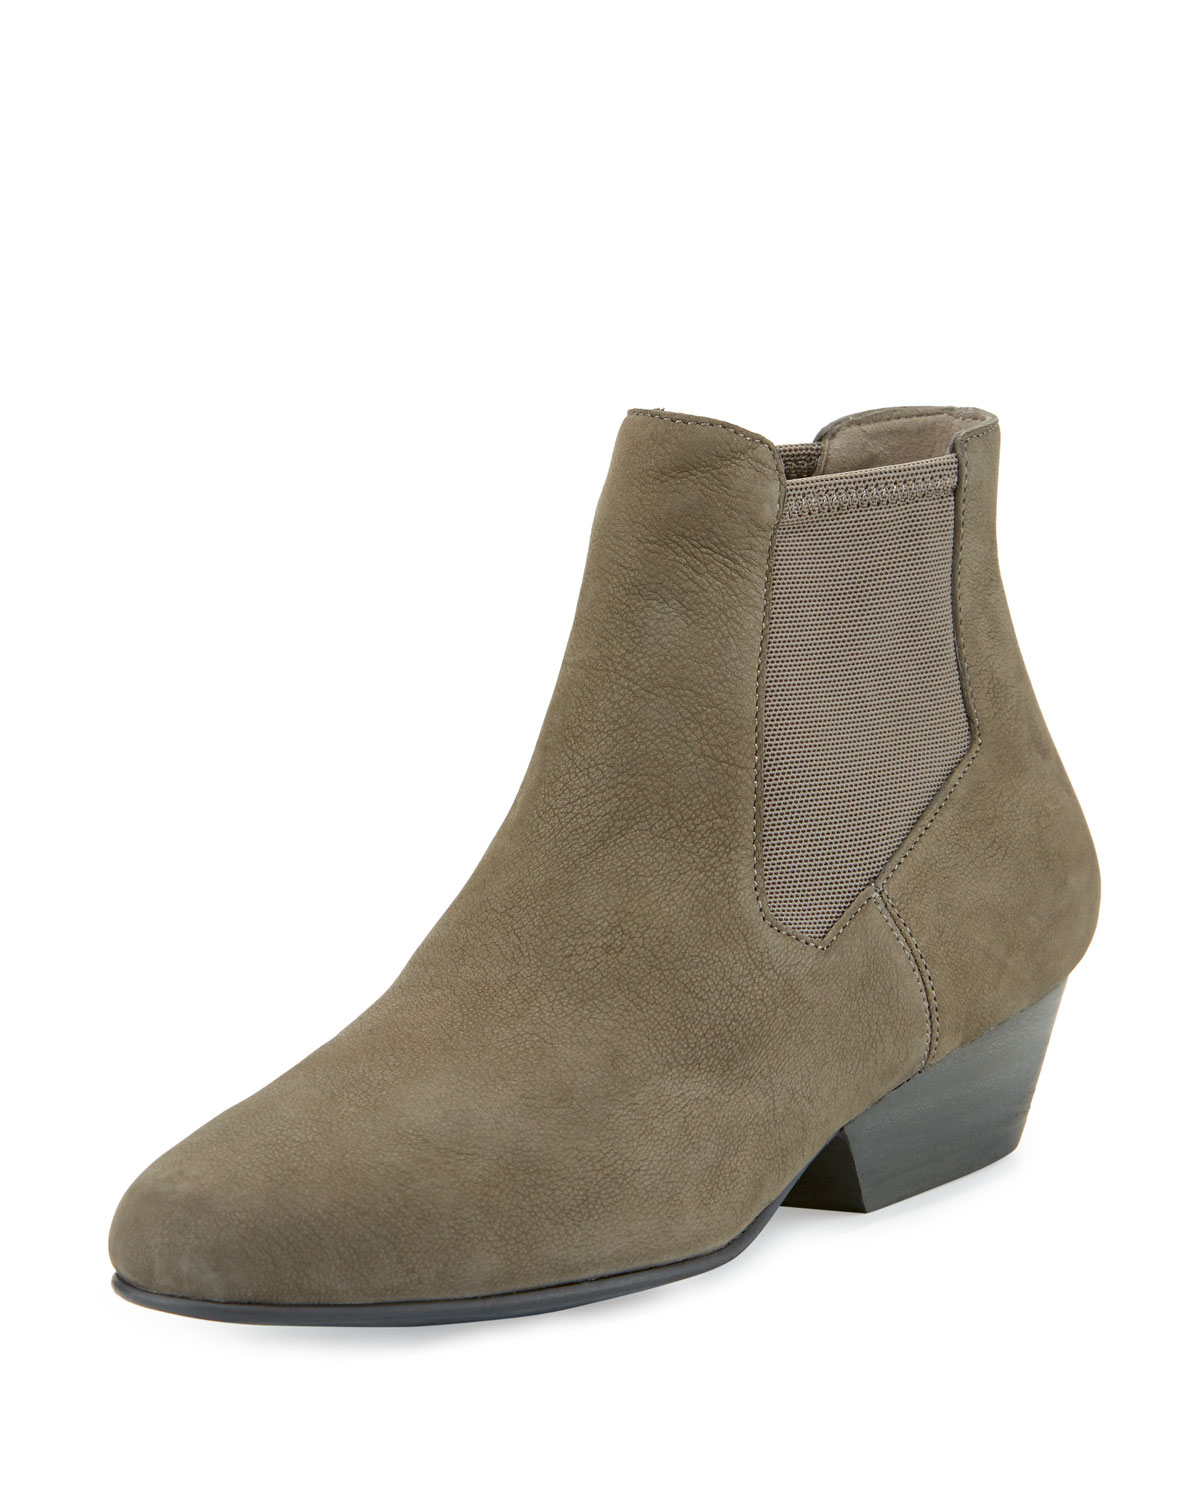 Eileen Fisher Knack Graphite Mesh-Panel Nubuck Bootie Shoes : MALIBU MART